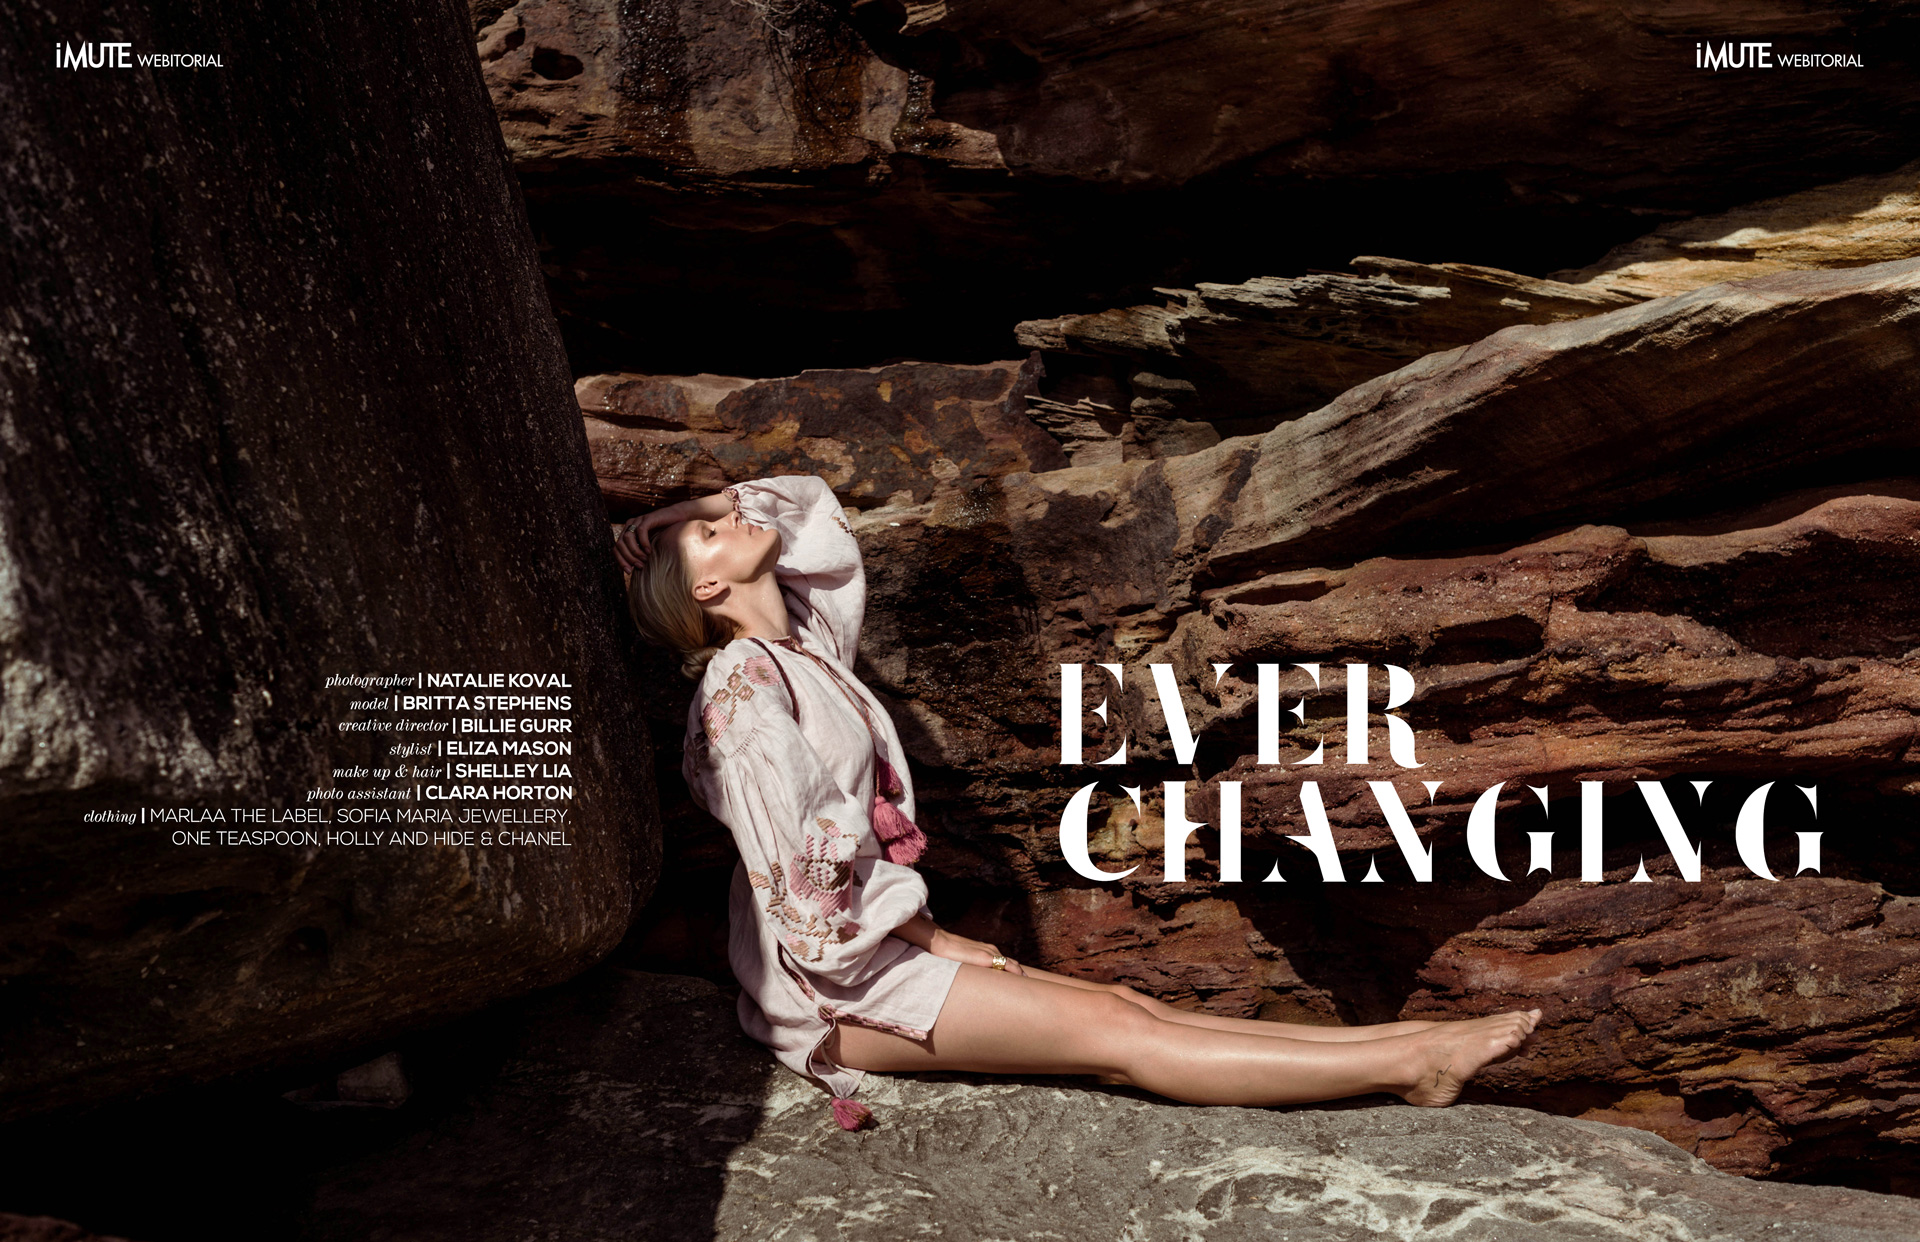 'Ever-Changing' Webitorial featured in iMute Magazine